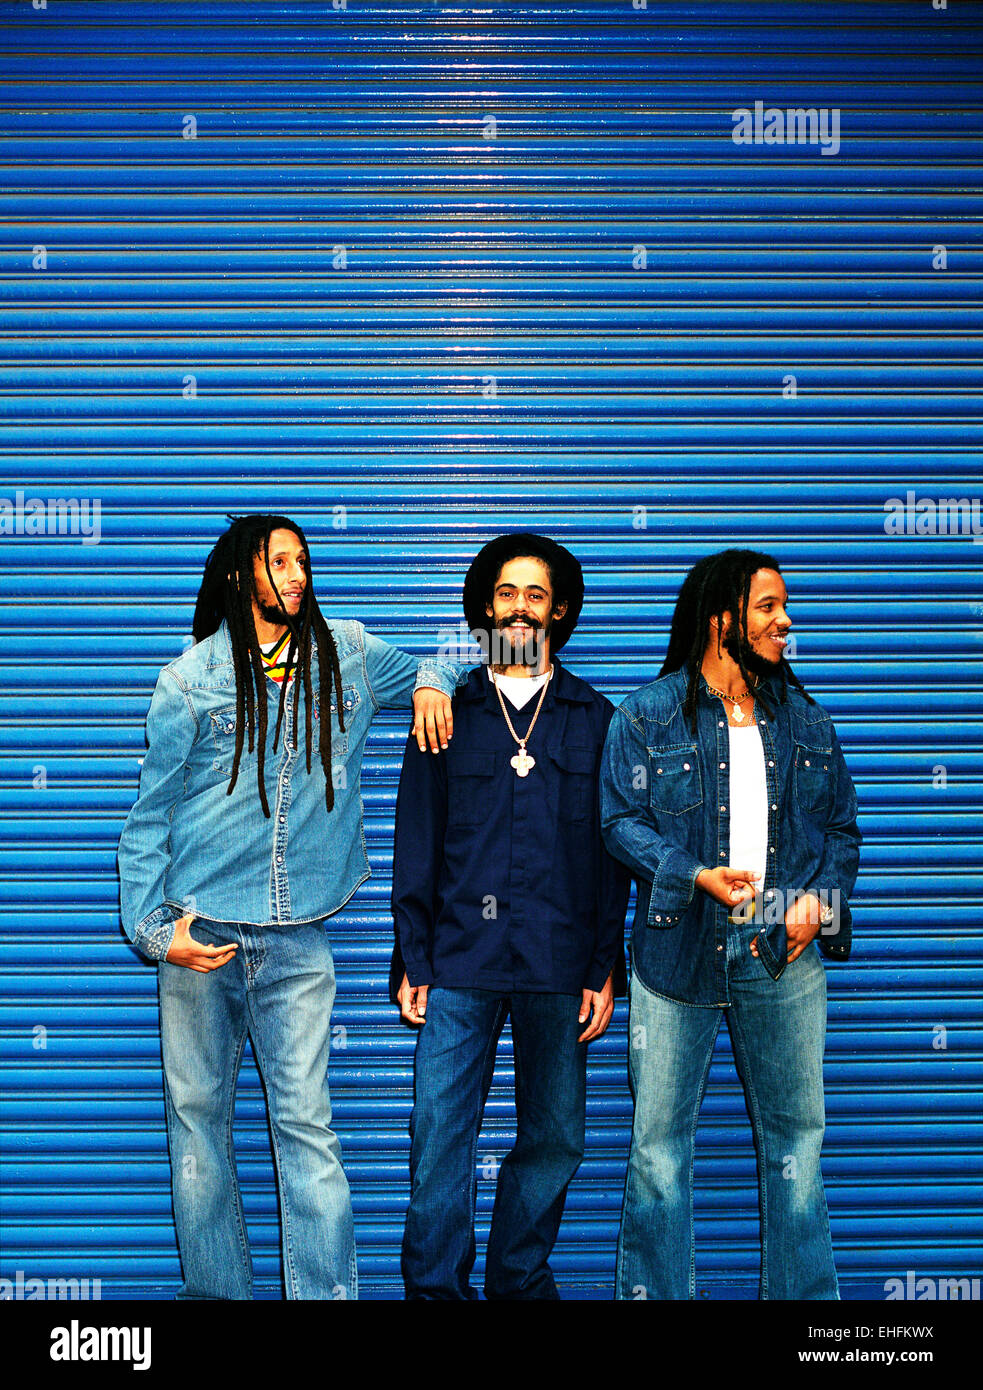 Portrait of Julian Damian and Steven Marley. - Stock Image